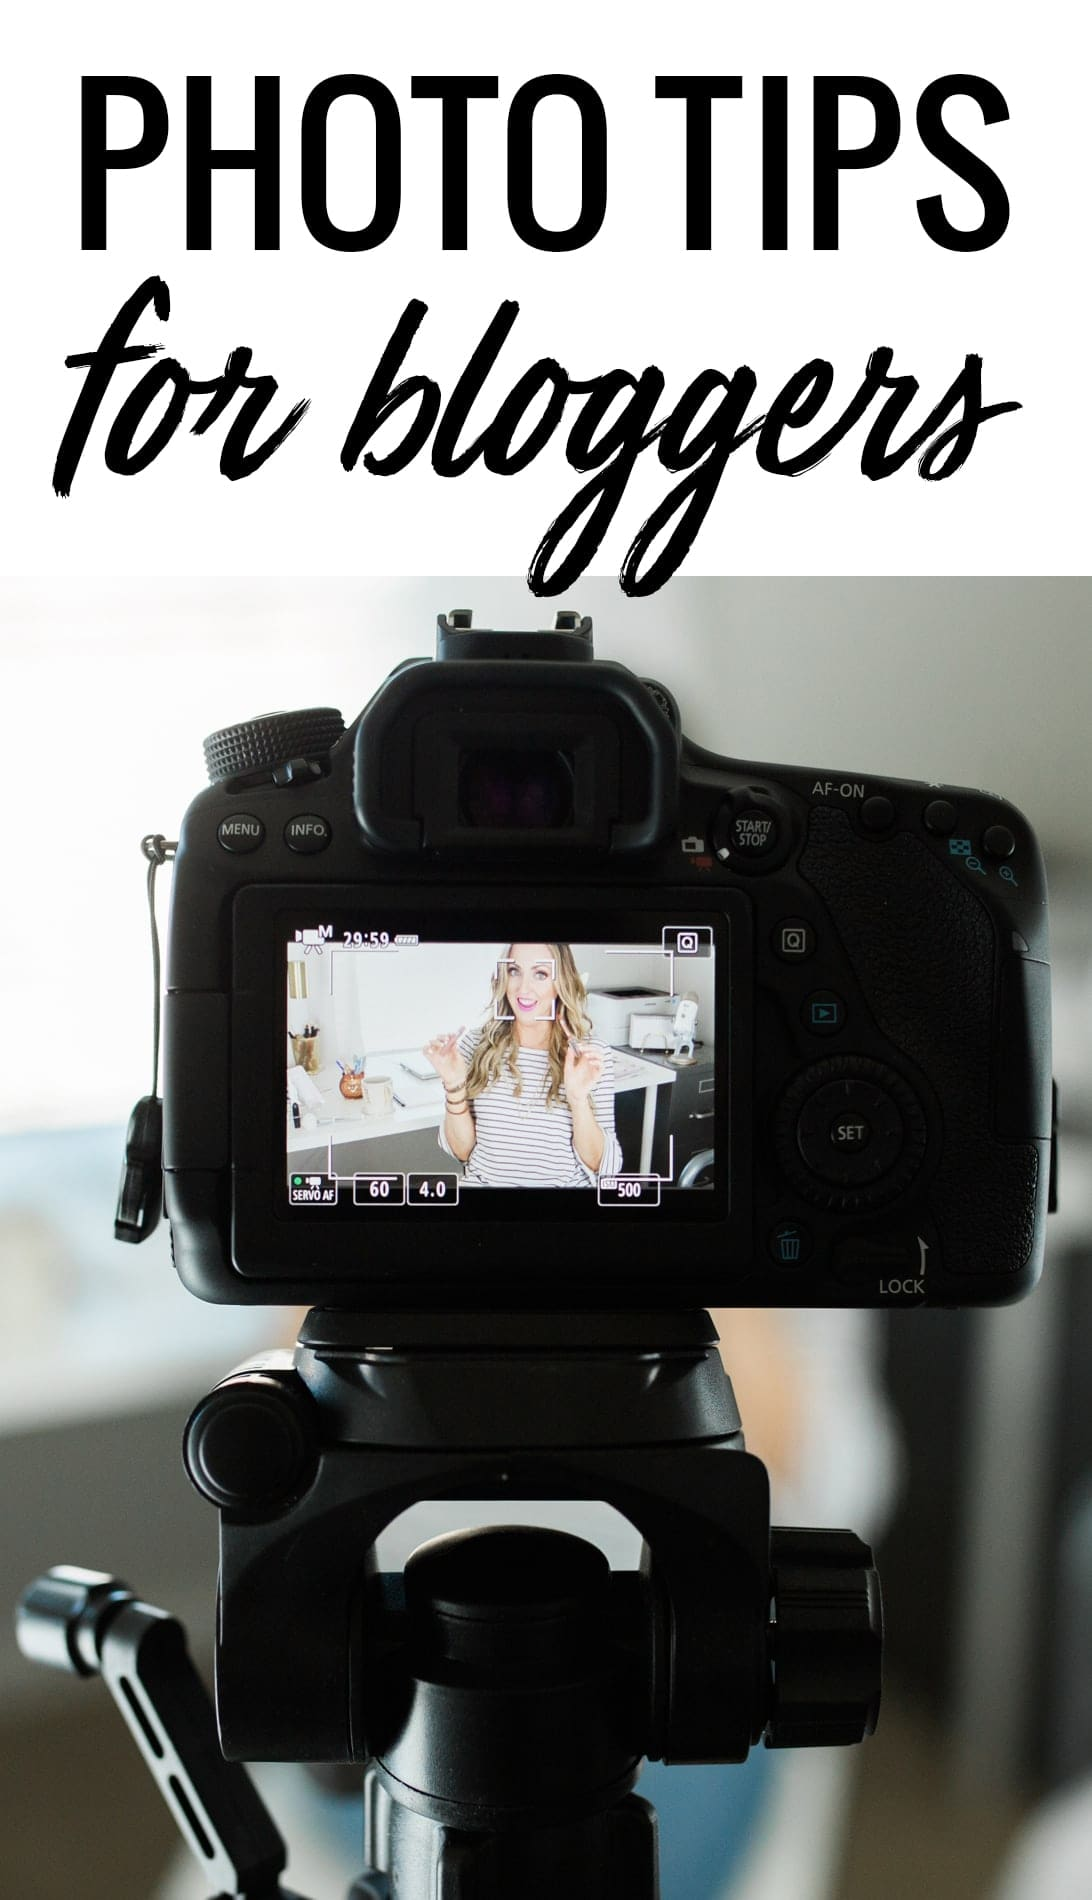 8 Blog Photography Tips Every Blogger Needs to Follow by popular blogger Meg O. on the Go